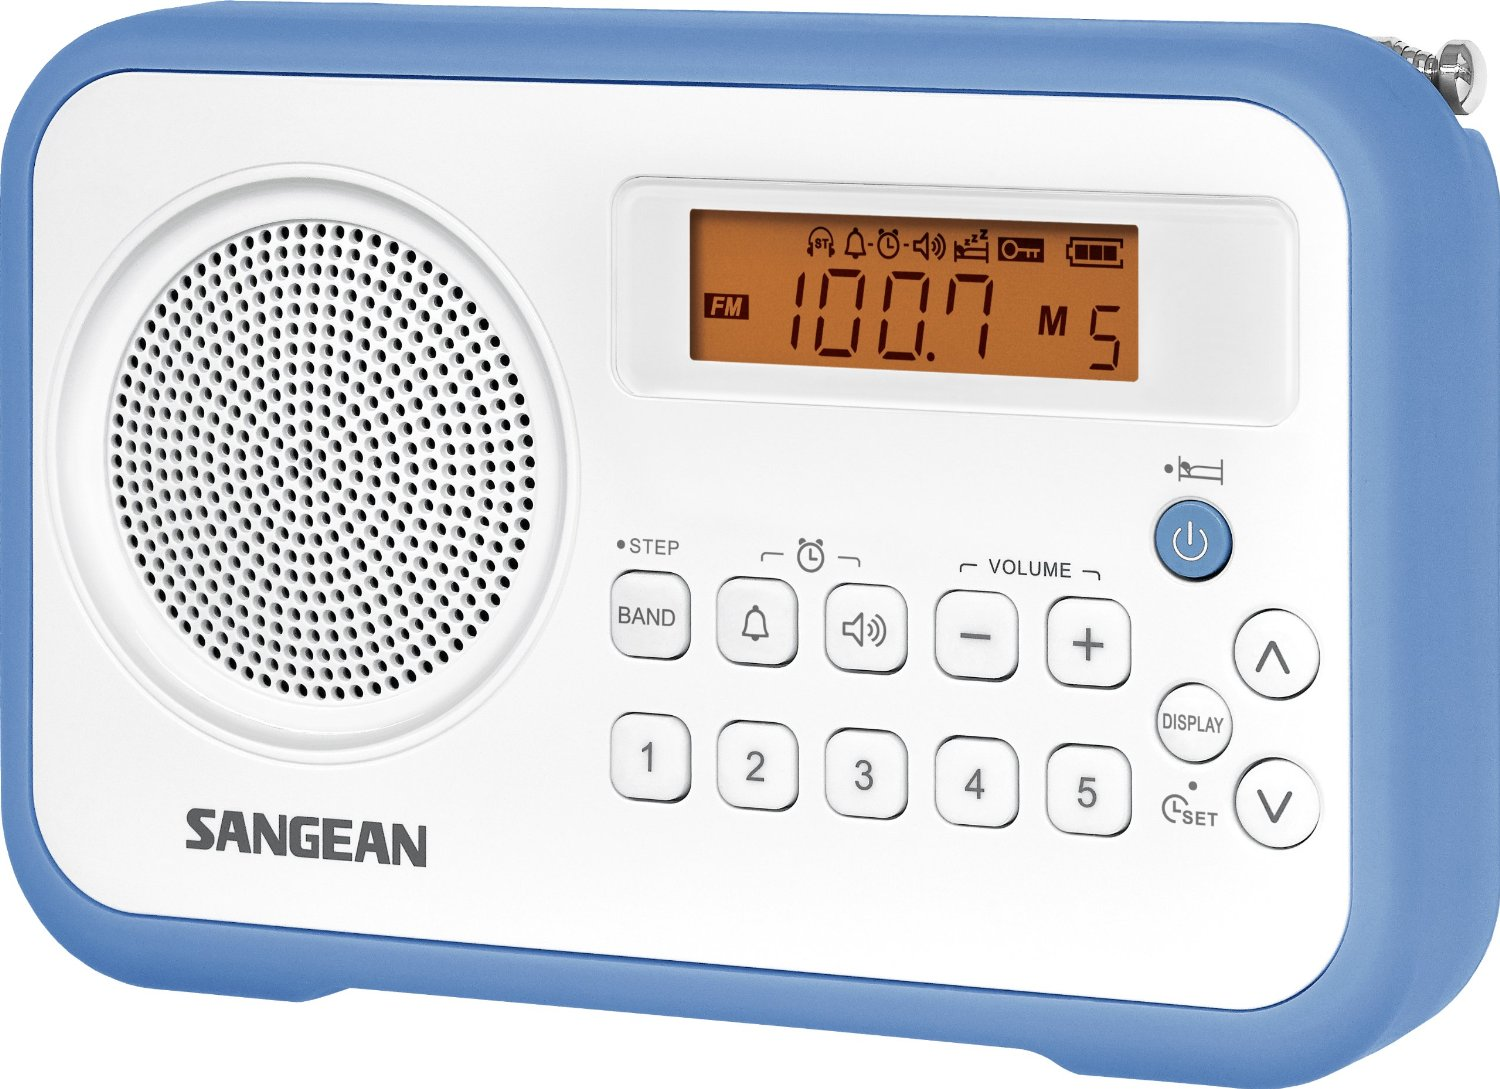 Sangean Pr D18 Dsp Am Fm Digital Portable Radio Radiojayallen Low Cost Bu White Blue